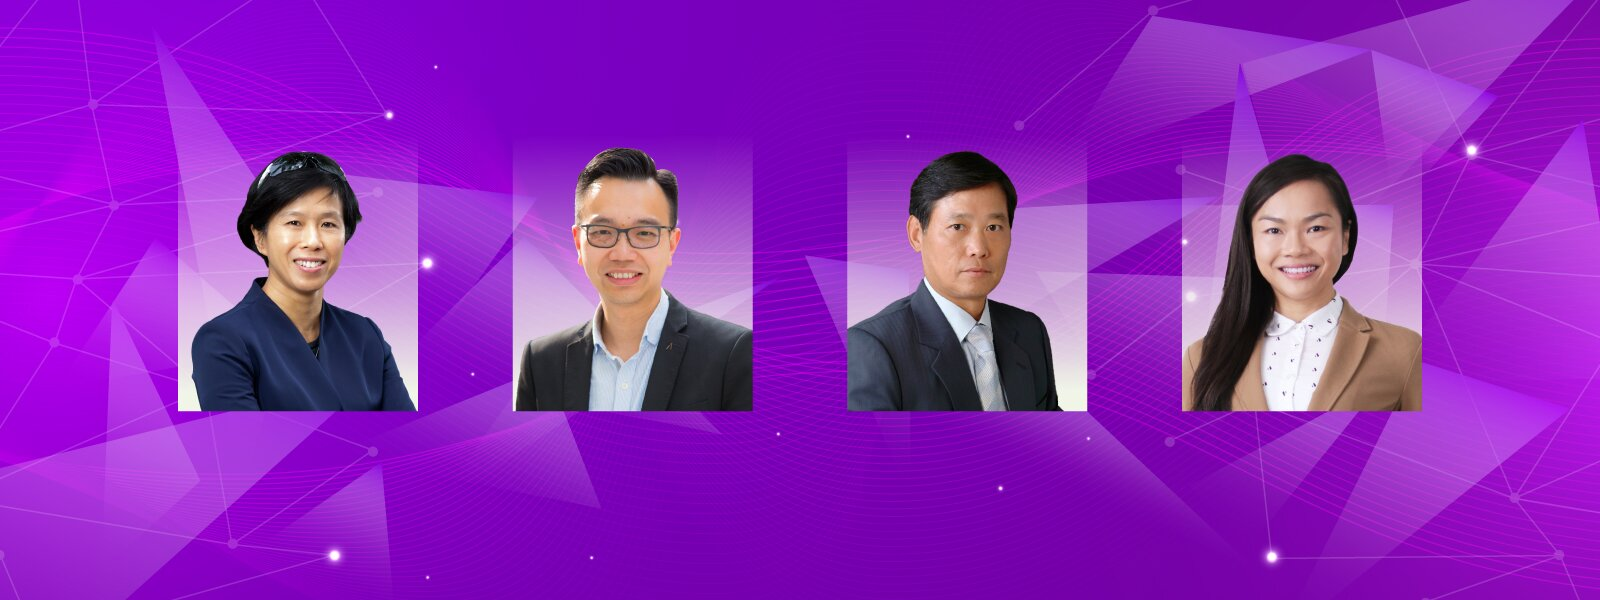 EdUHK to Present Honorary Fellowships to Four Distinguished Individuals